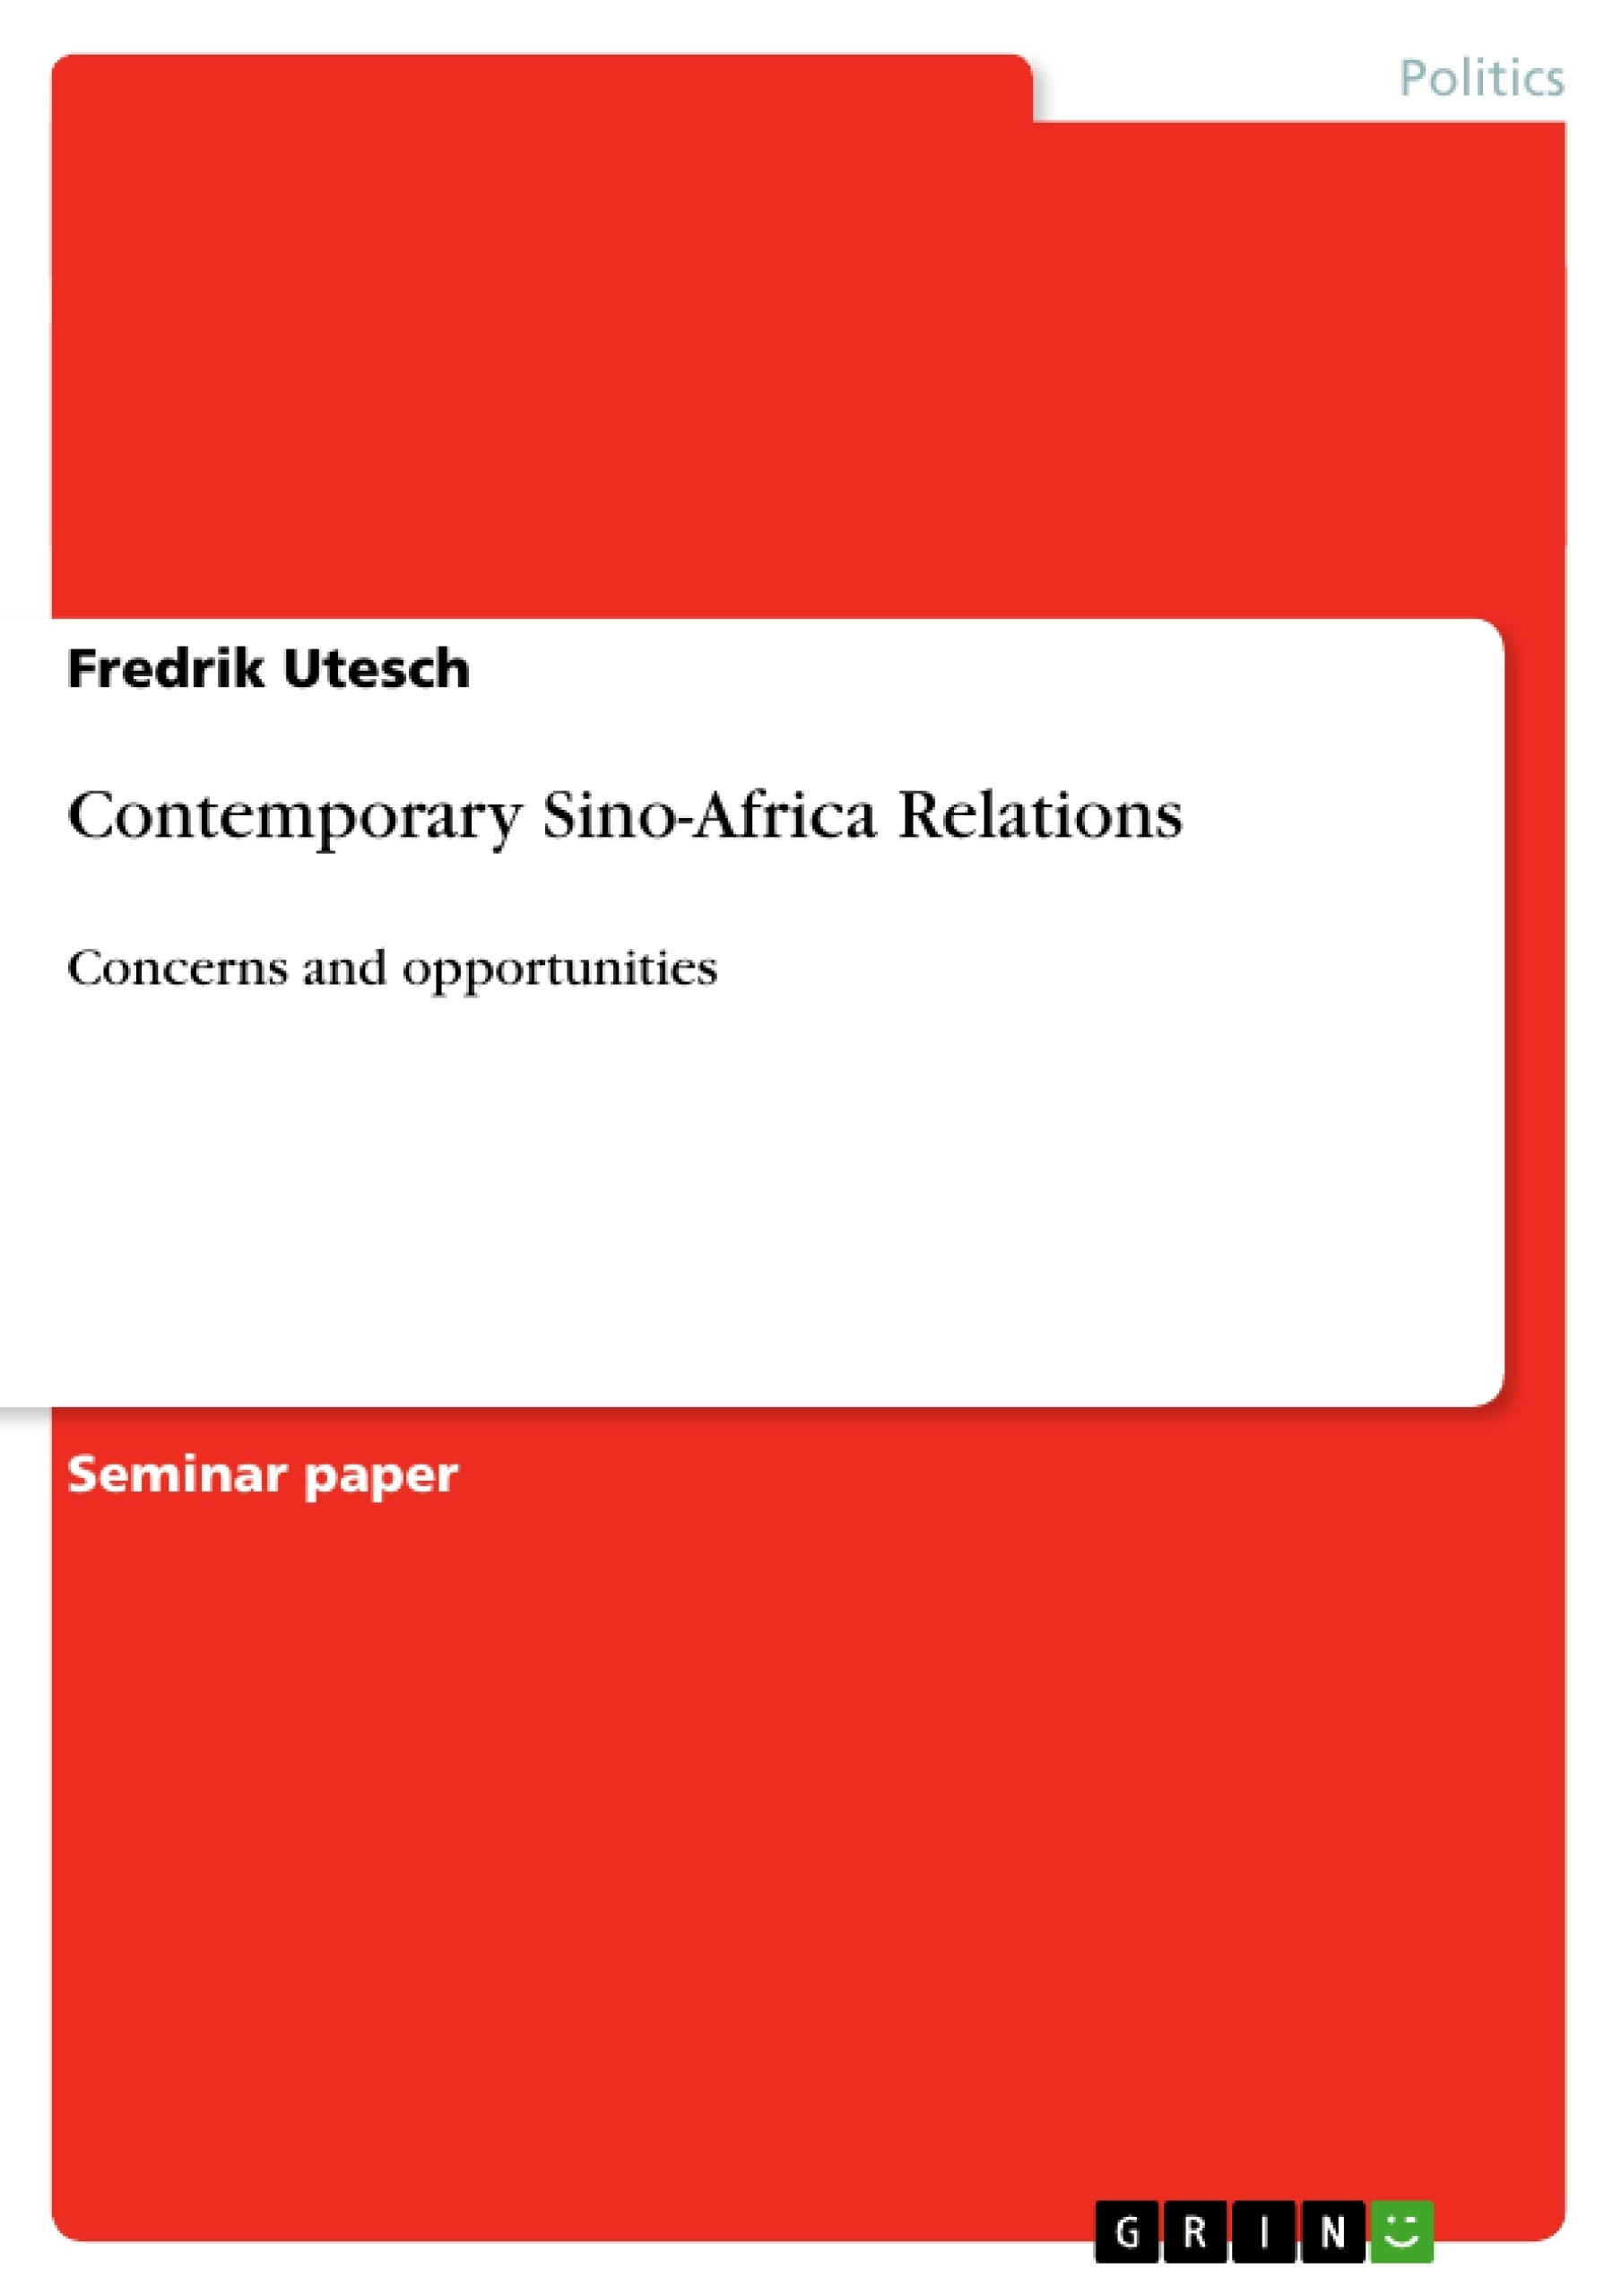 Title: Contemporary Sino-Africa Relations